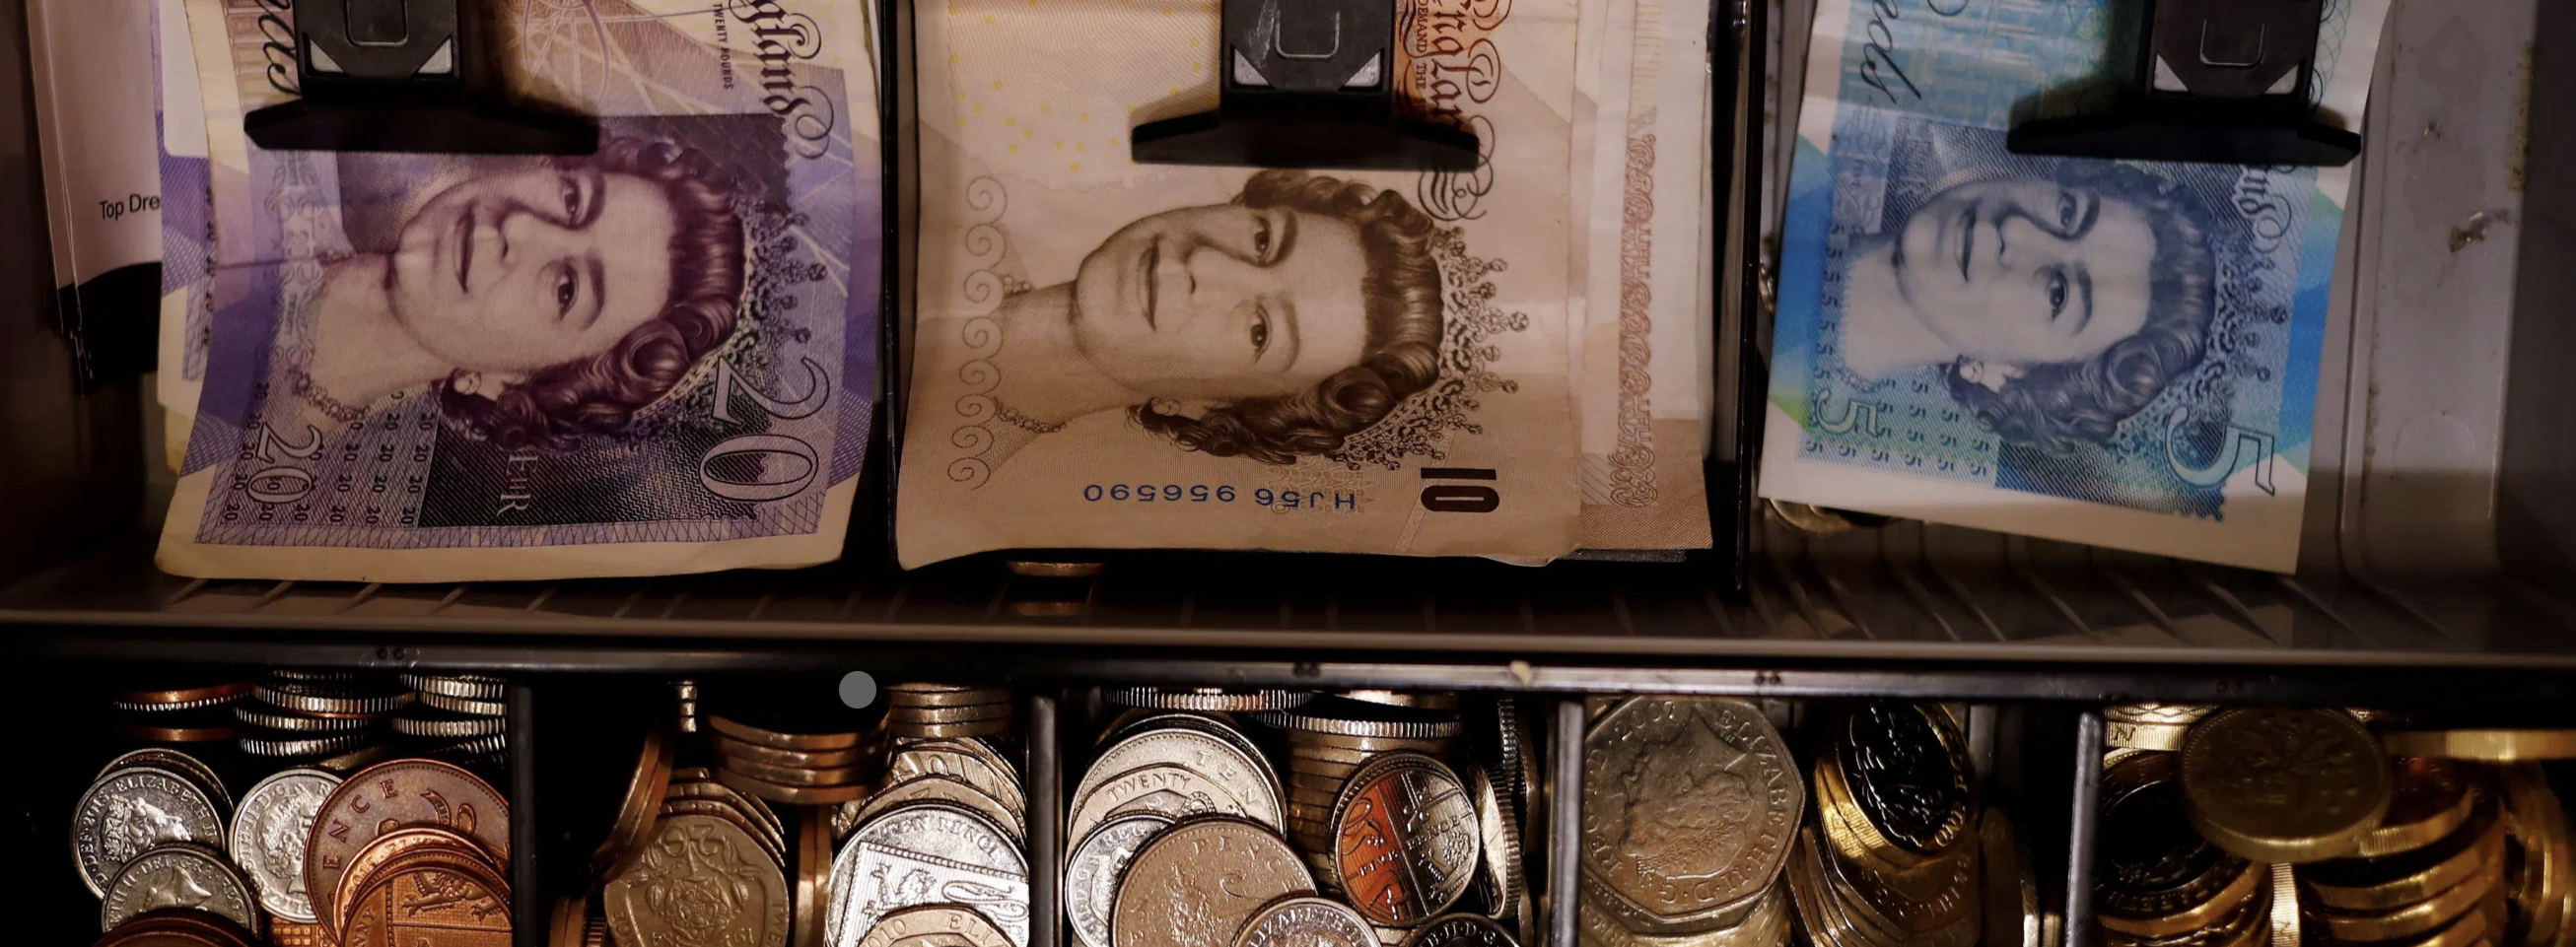 As central banks debate digital currencies, the UK aims to protect cash.